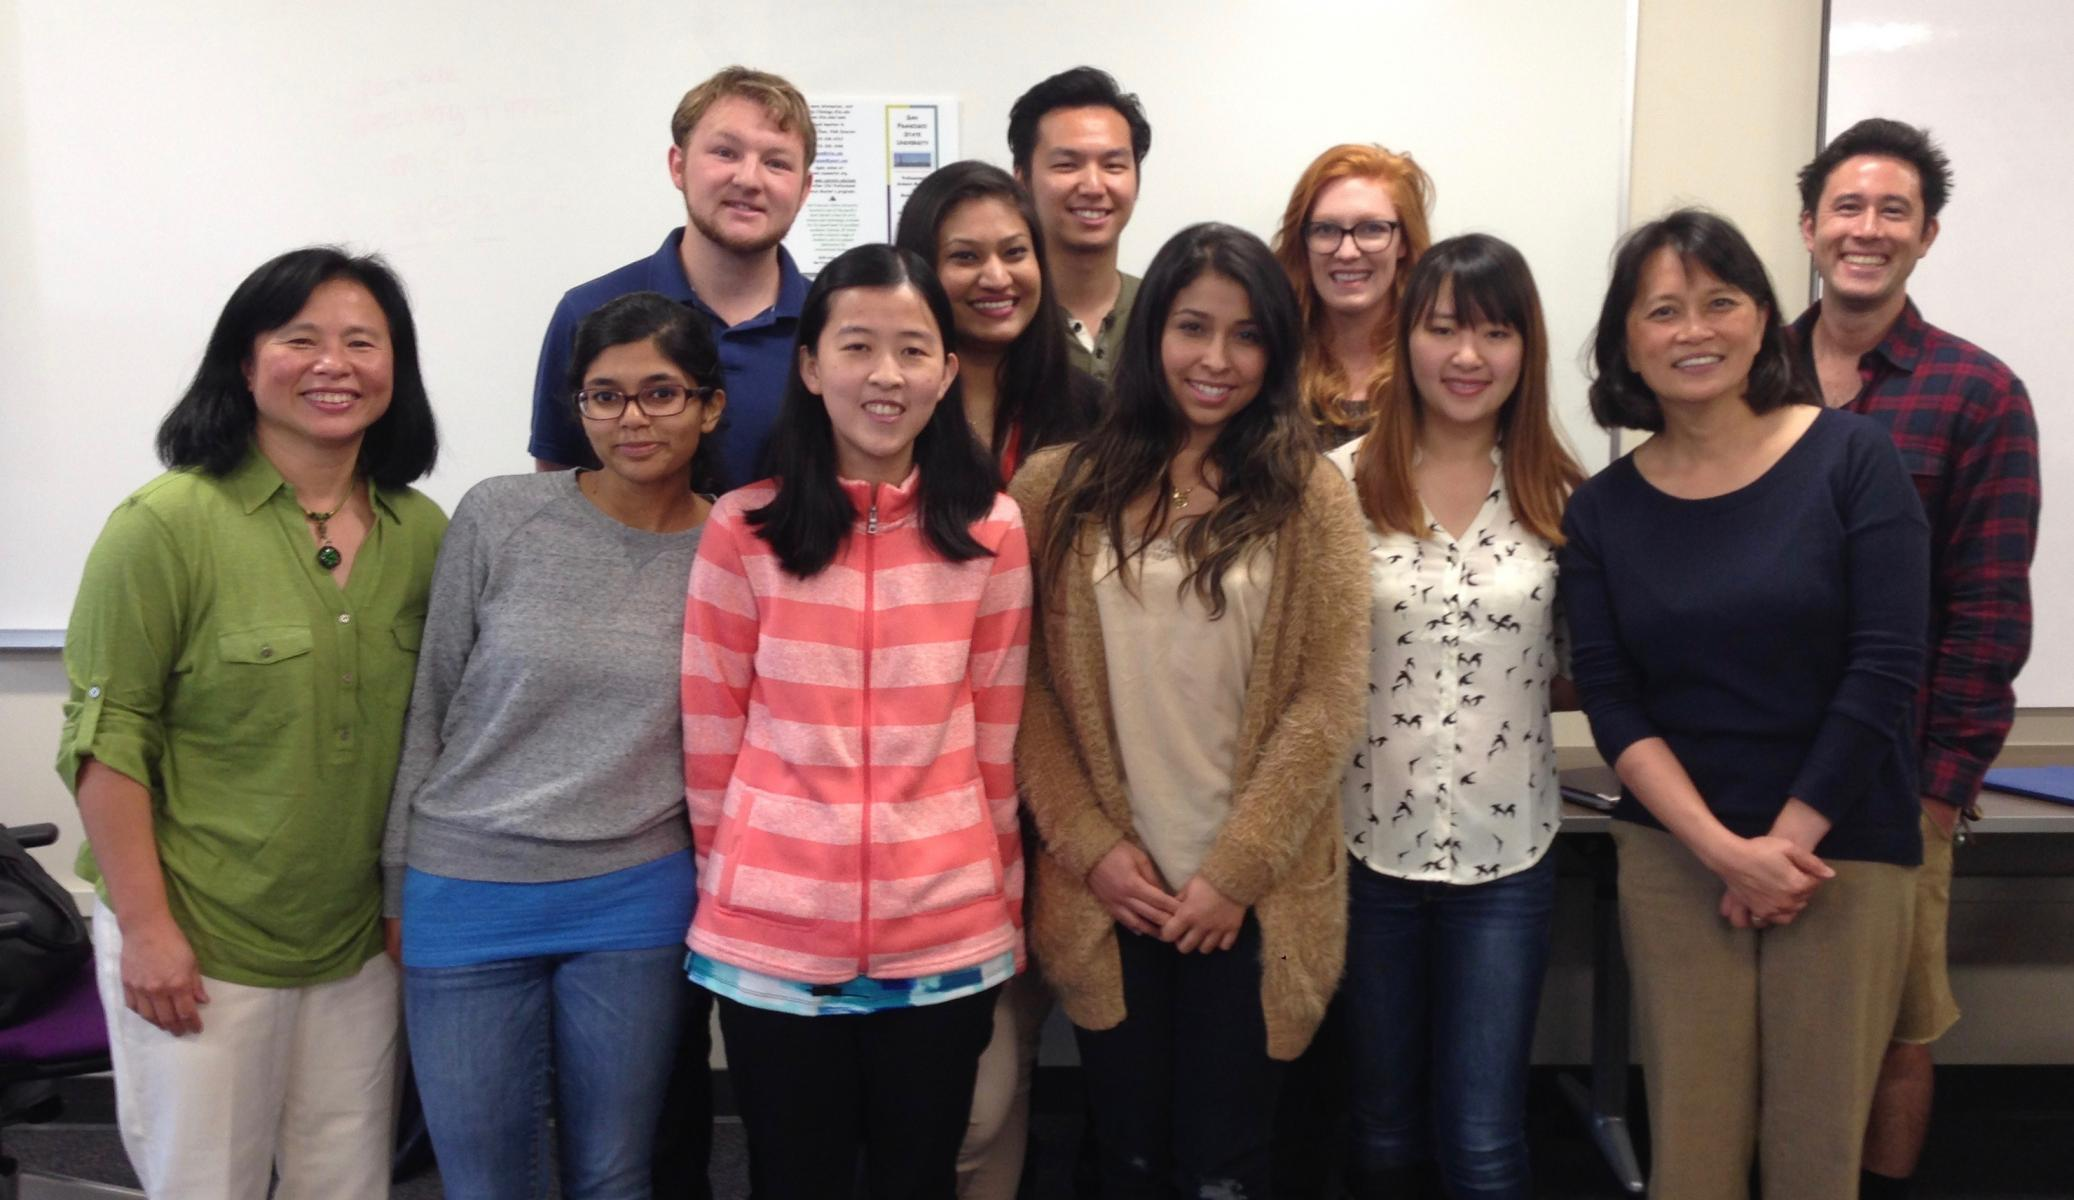 Cohort 7 Class students with Dr. Lily Chen and Dr. Linda Chen at 2014 orientation meeting